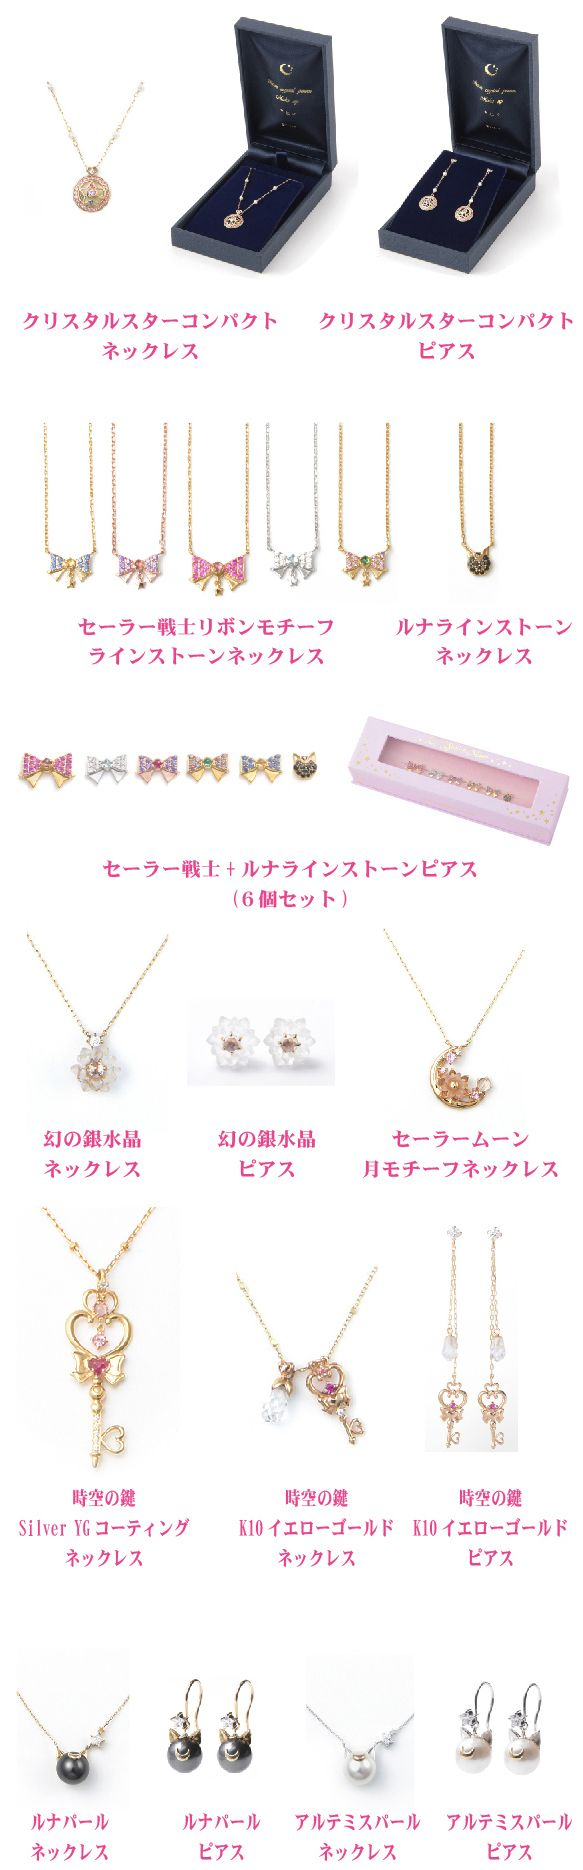 """sailor moon"" ""sailor moon jewelry"" ""samantha tiara"" ""sailor moon merchandise"" ""sailor moon necklace"" ""sailor moon earrings"" pearl gold silver luna artemis ""space time key"" ""time key"" isetan shop japan anime 2016 diamond ""crystal star"""